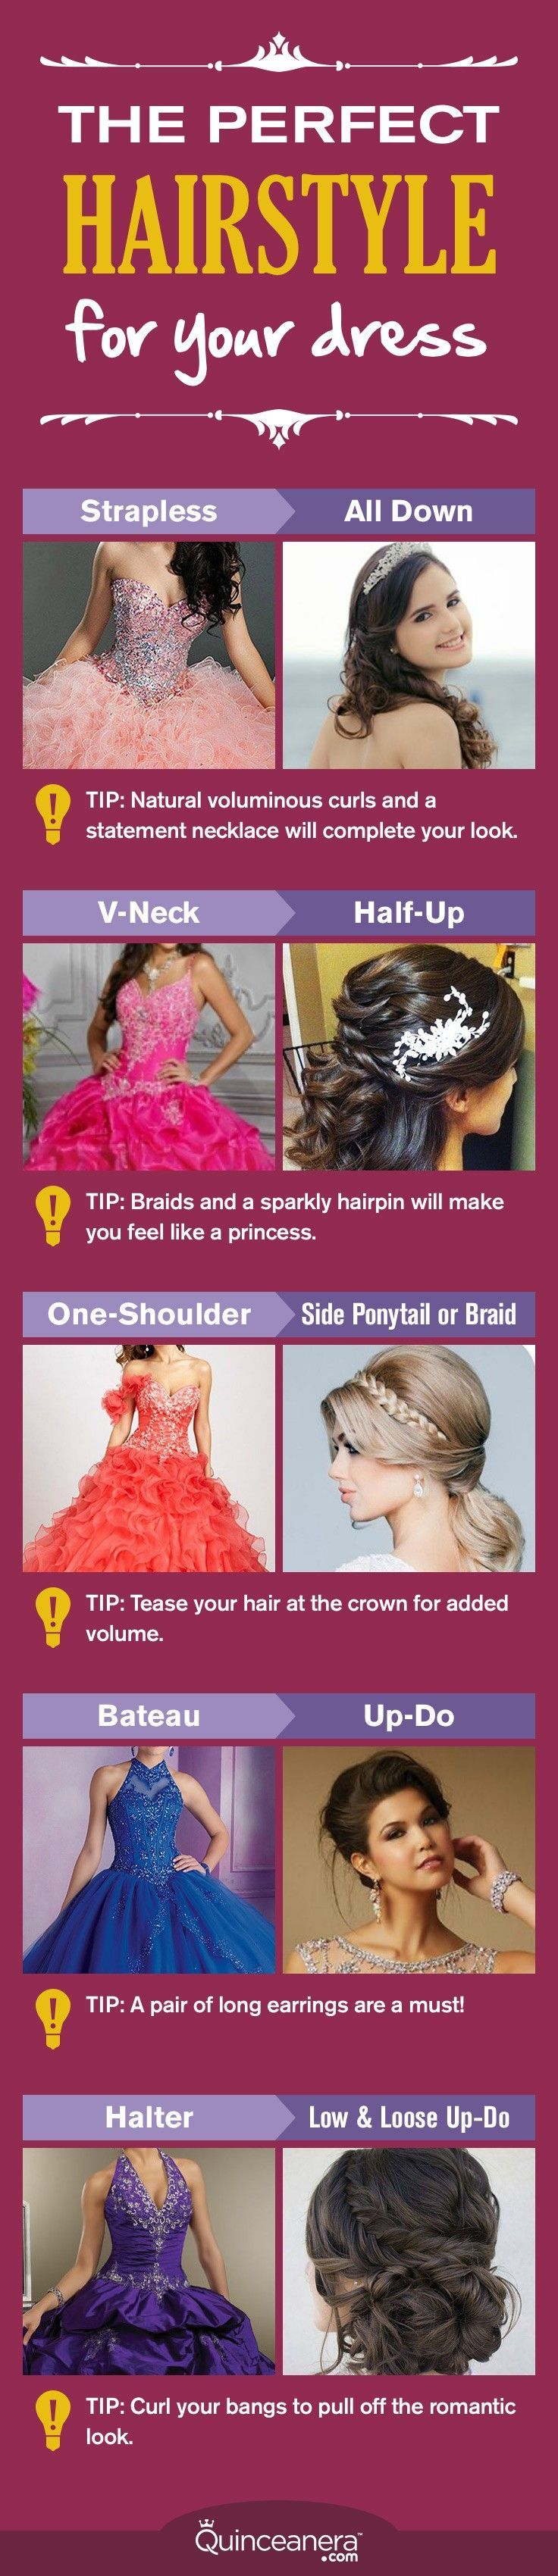 It's time to examine the neckline on your dress and find out the Quince hairstyle you're meant to show off! - See more at: http://www.quinceanera.com/hair-styles/the-perfect-quince-hairstyle-according-to-your-dress-neckline/?utm_source=pinterest&utm_medium=social%20&utm_campaign=hair-styles-the-perfect-quince-hairstyle-according-to-your-dress-neckline#sthash.kpcyddhe.dpuf